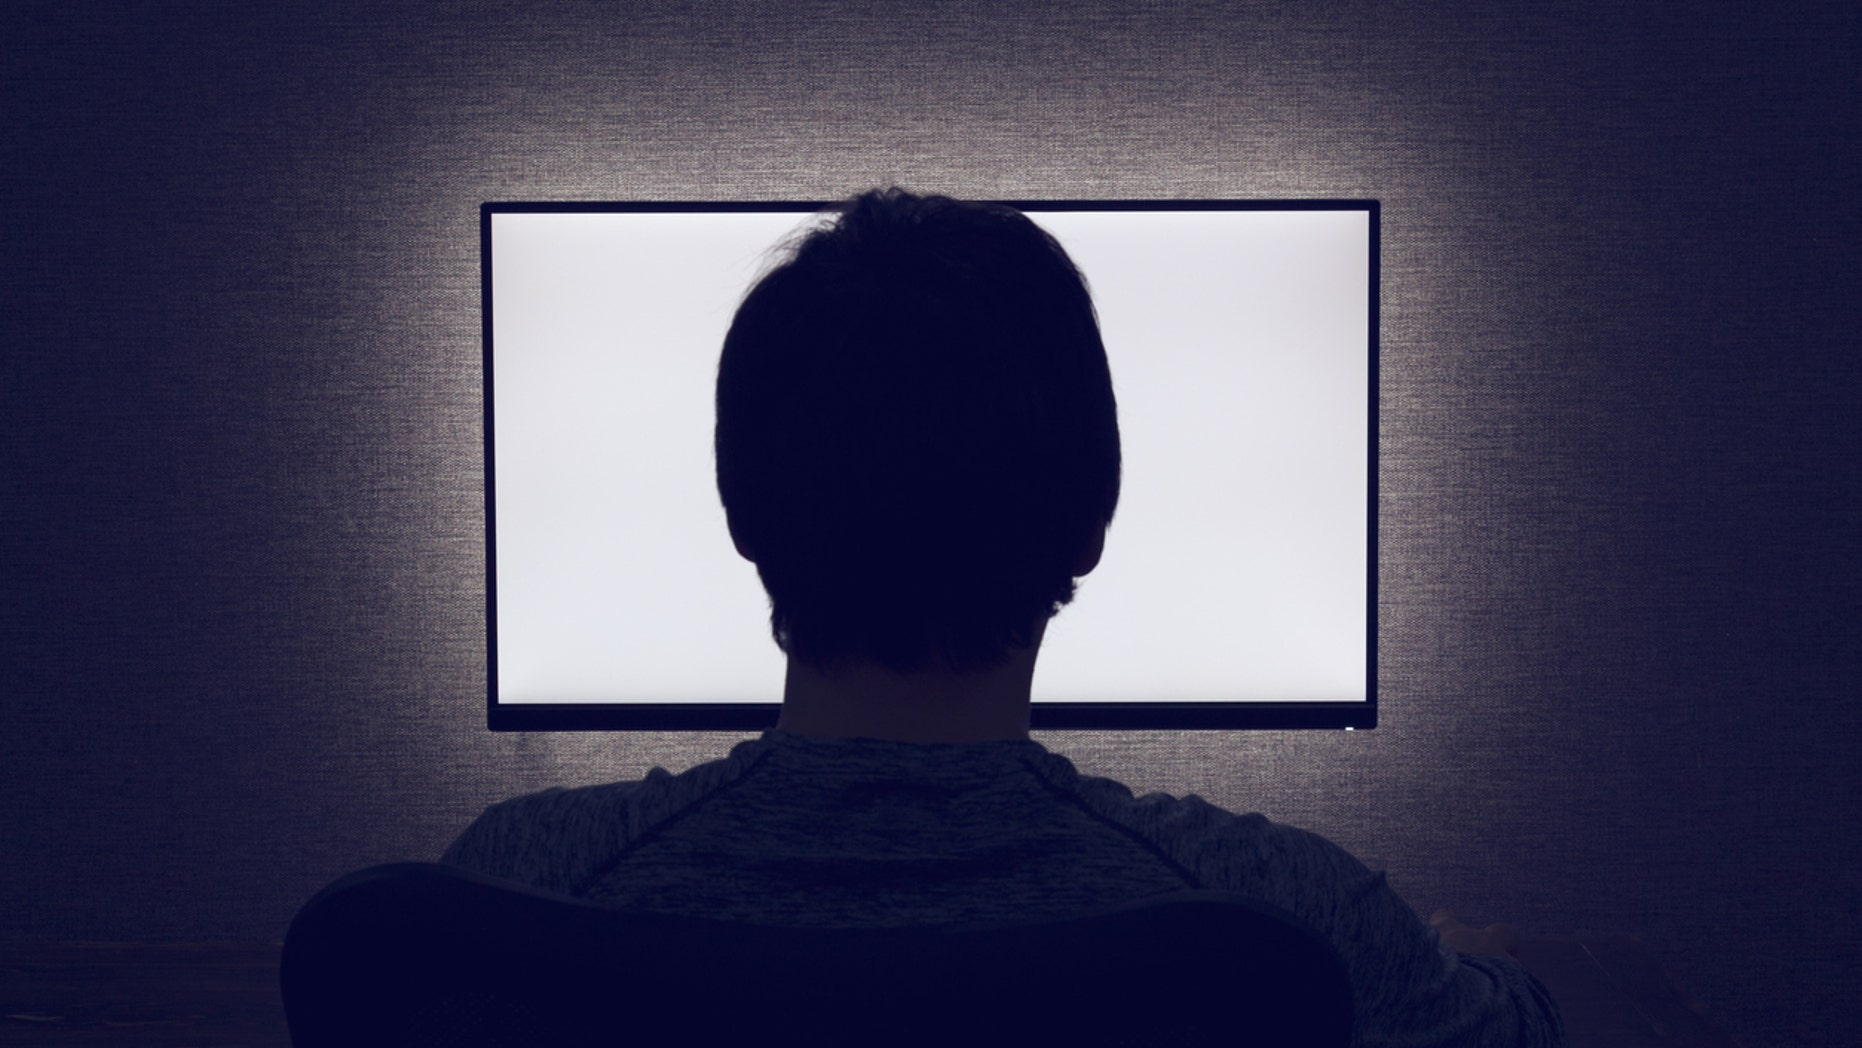 Man sits in front of a blank monitor in dark room